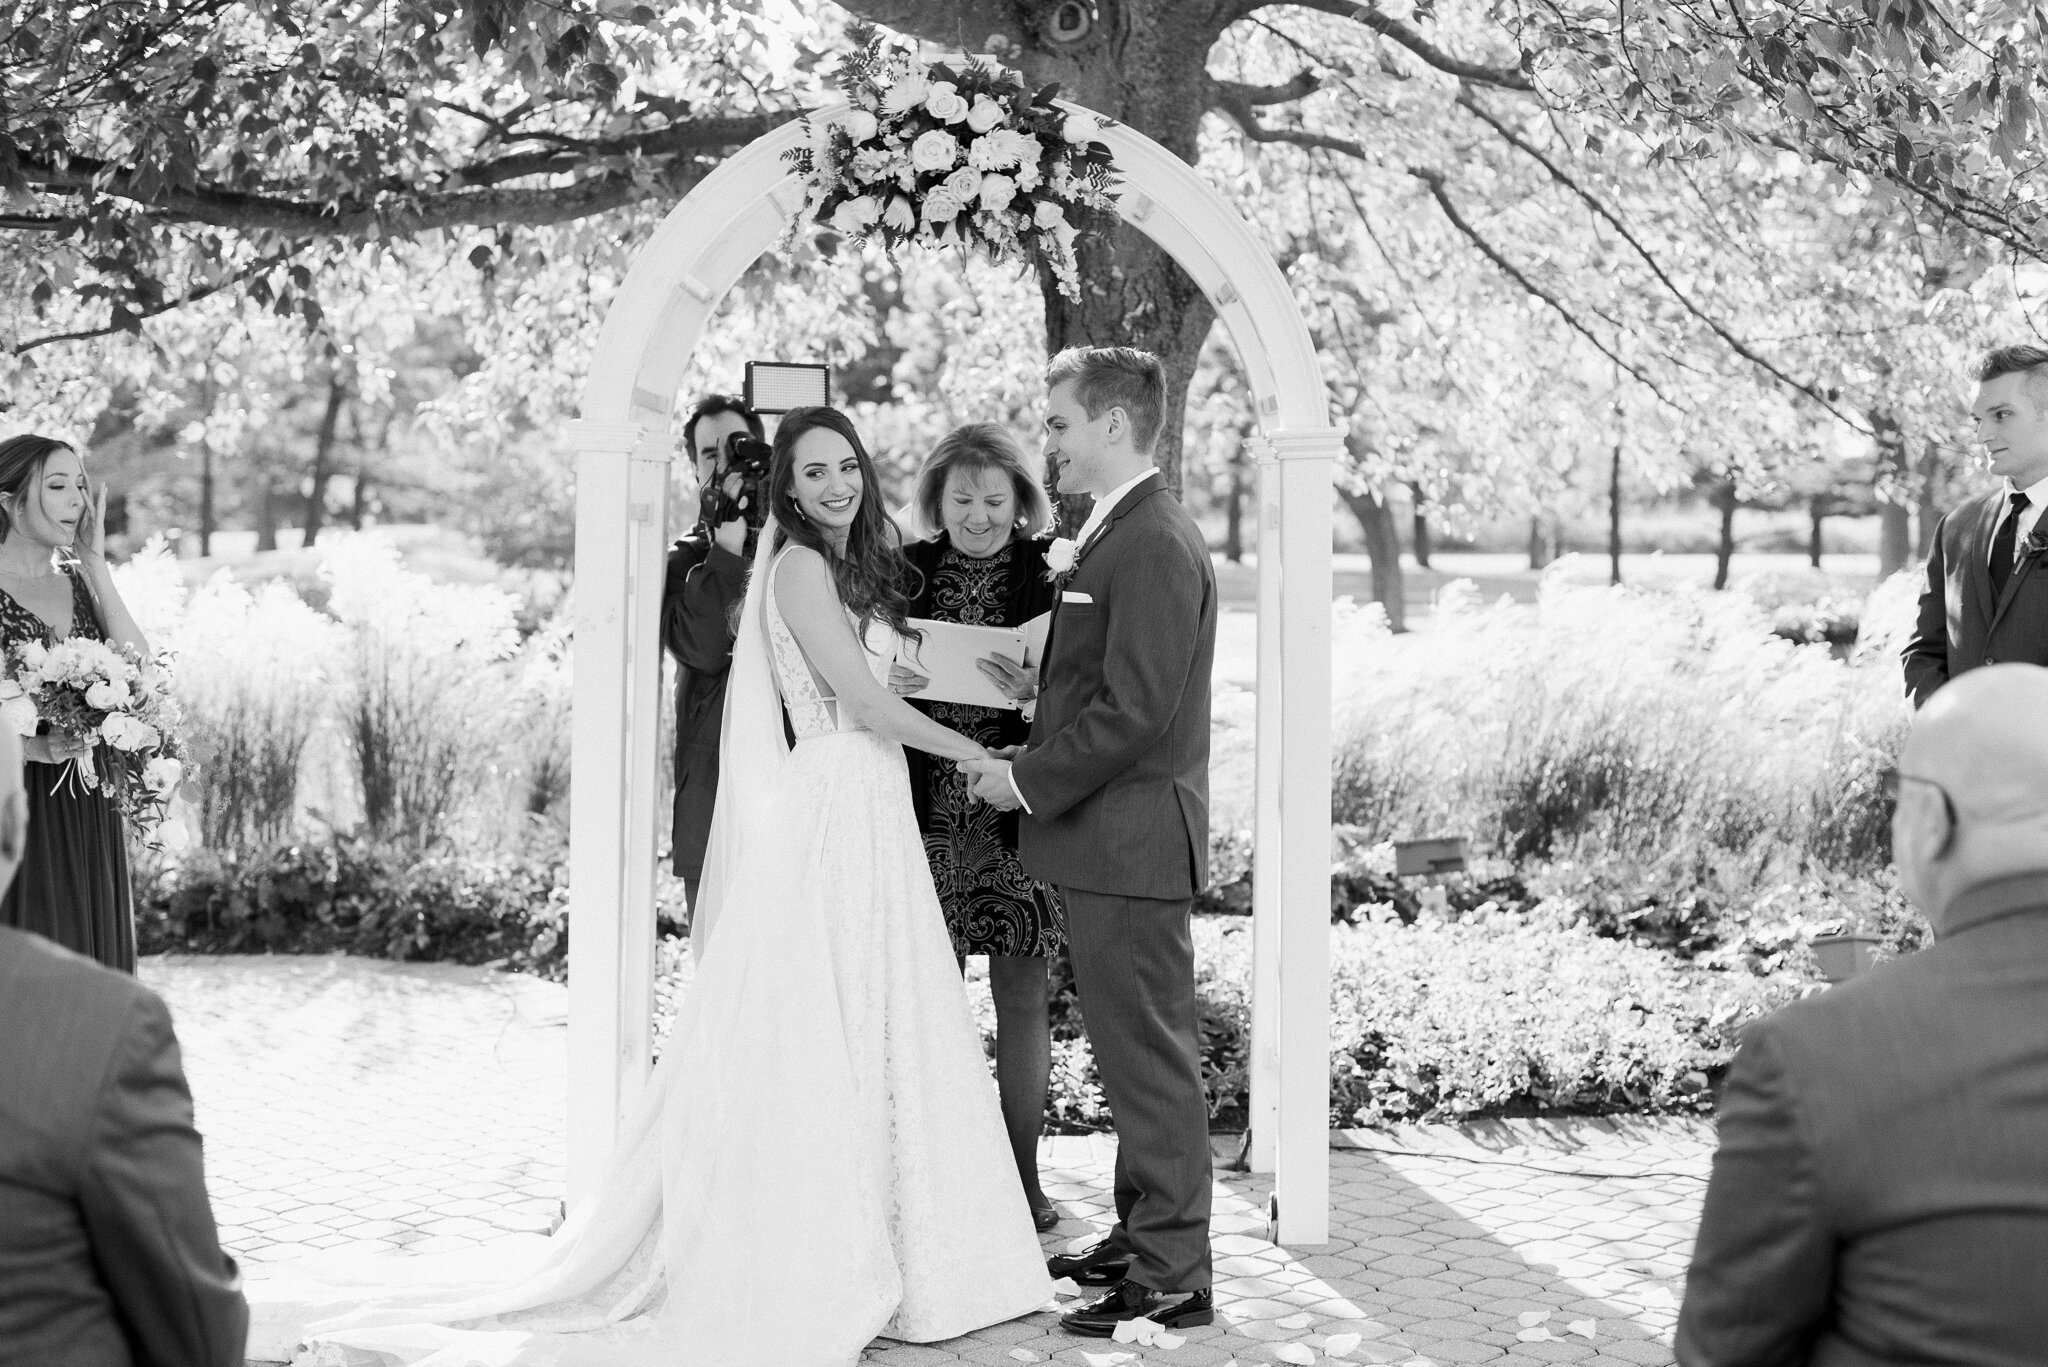 chicagoweddingphotography-36.jpg